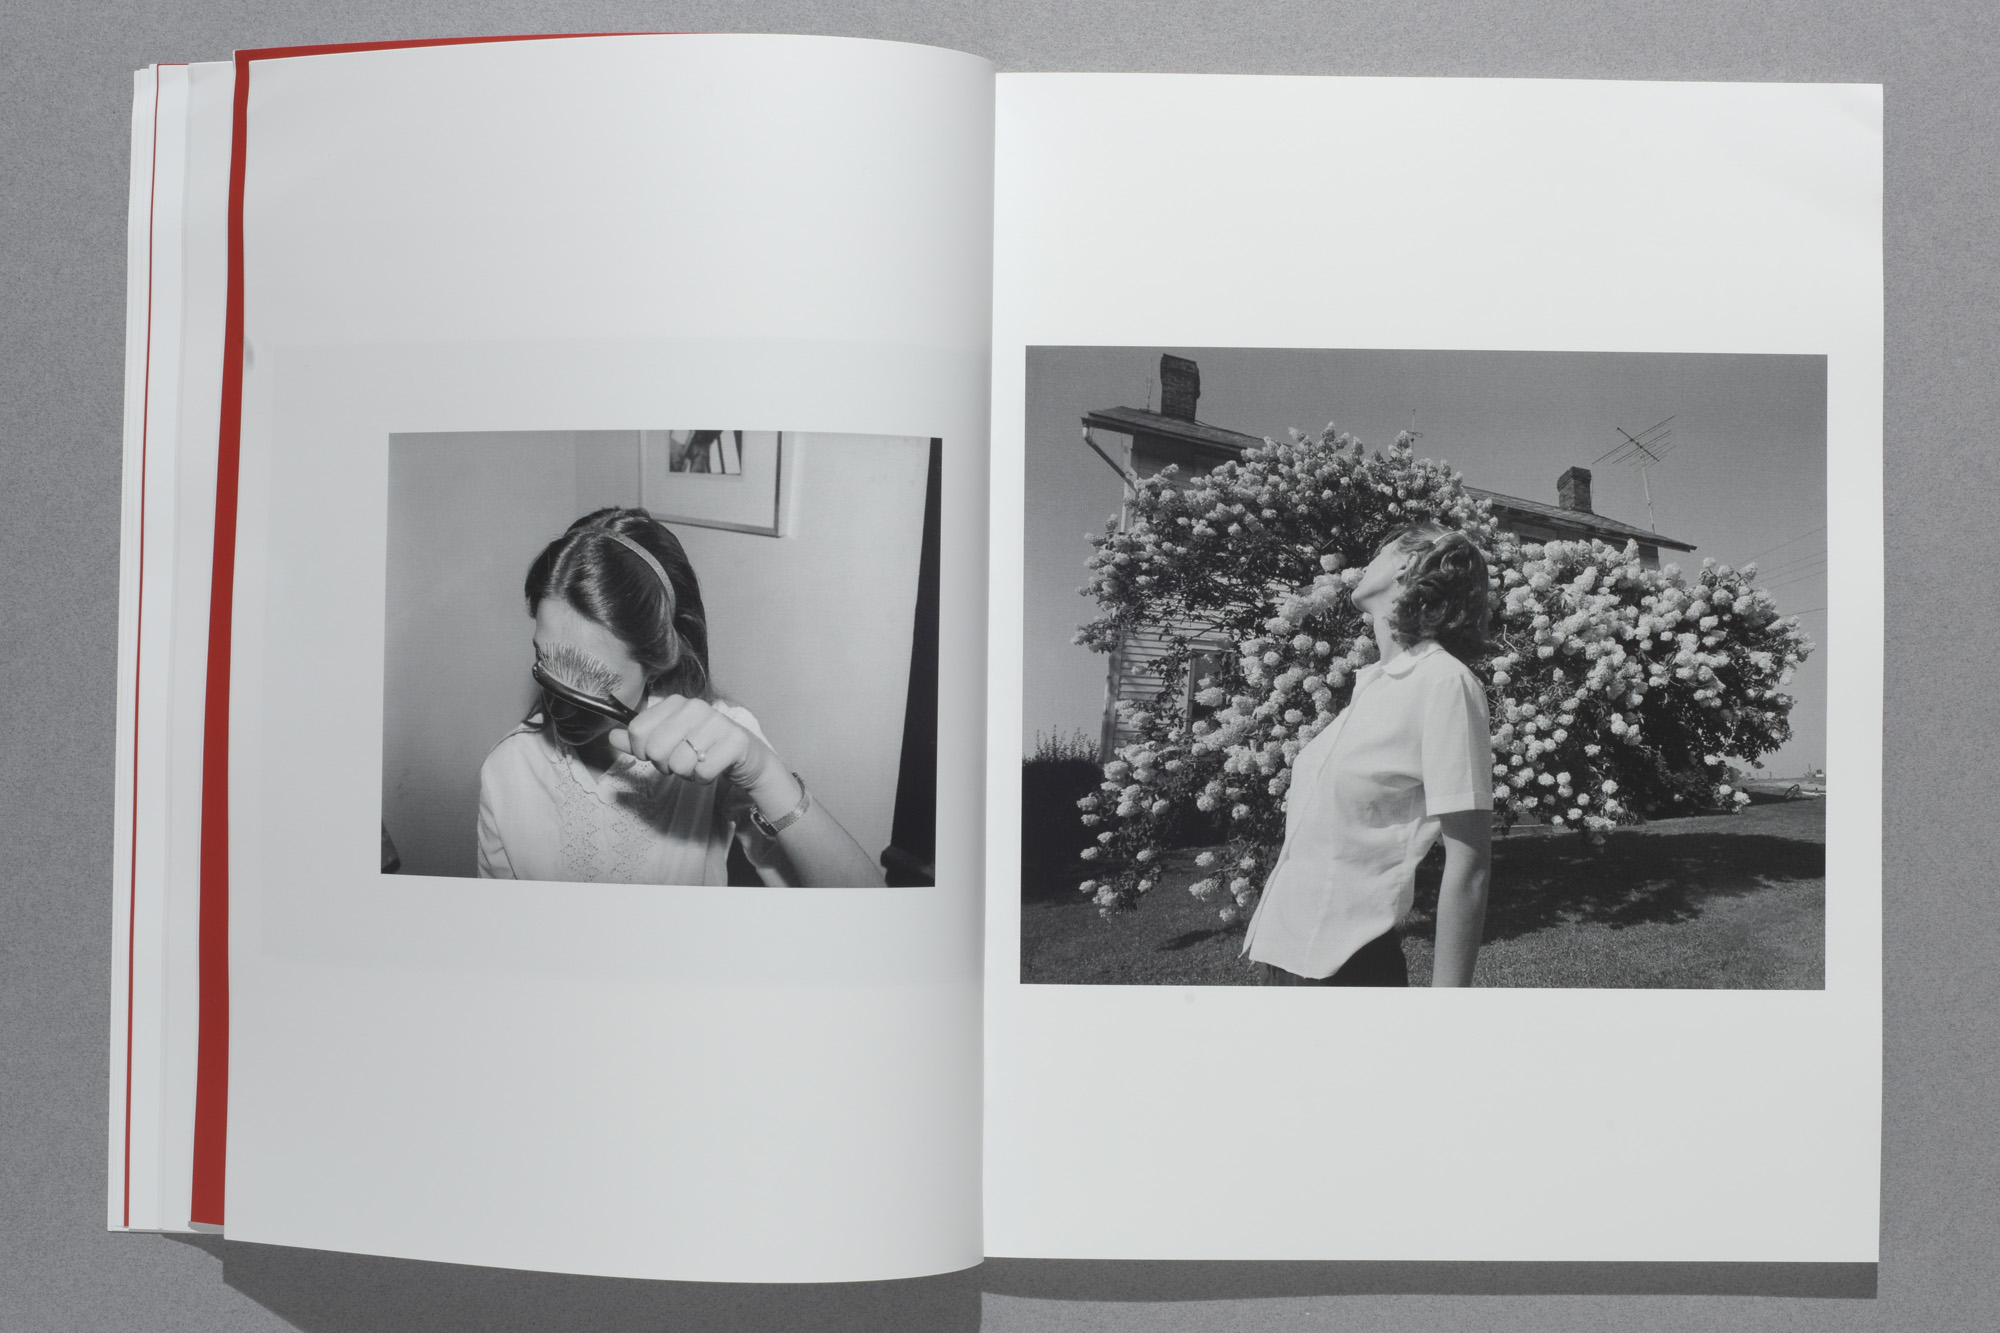 Photos by Michael Northrup